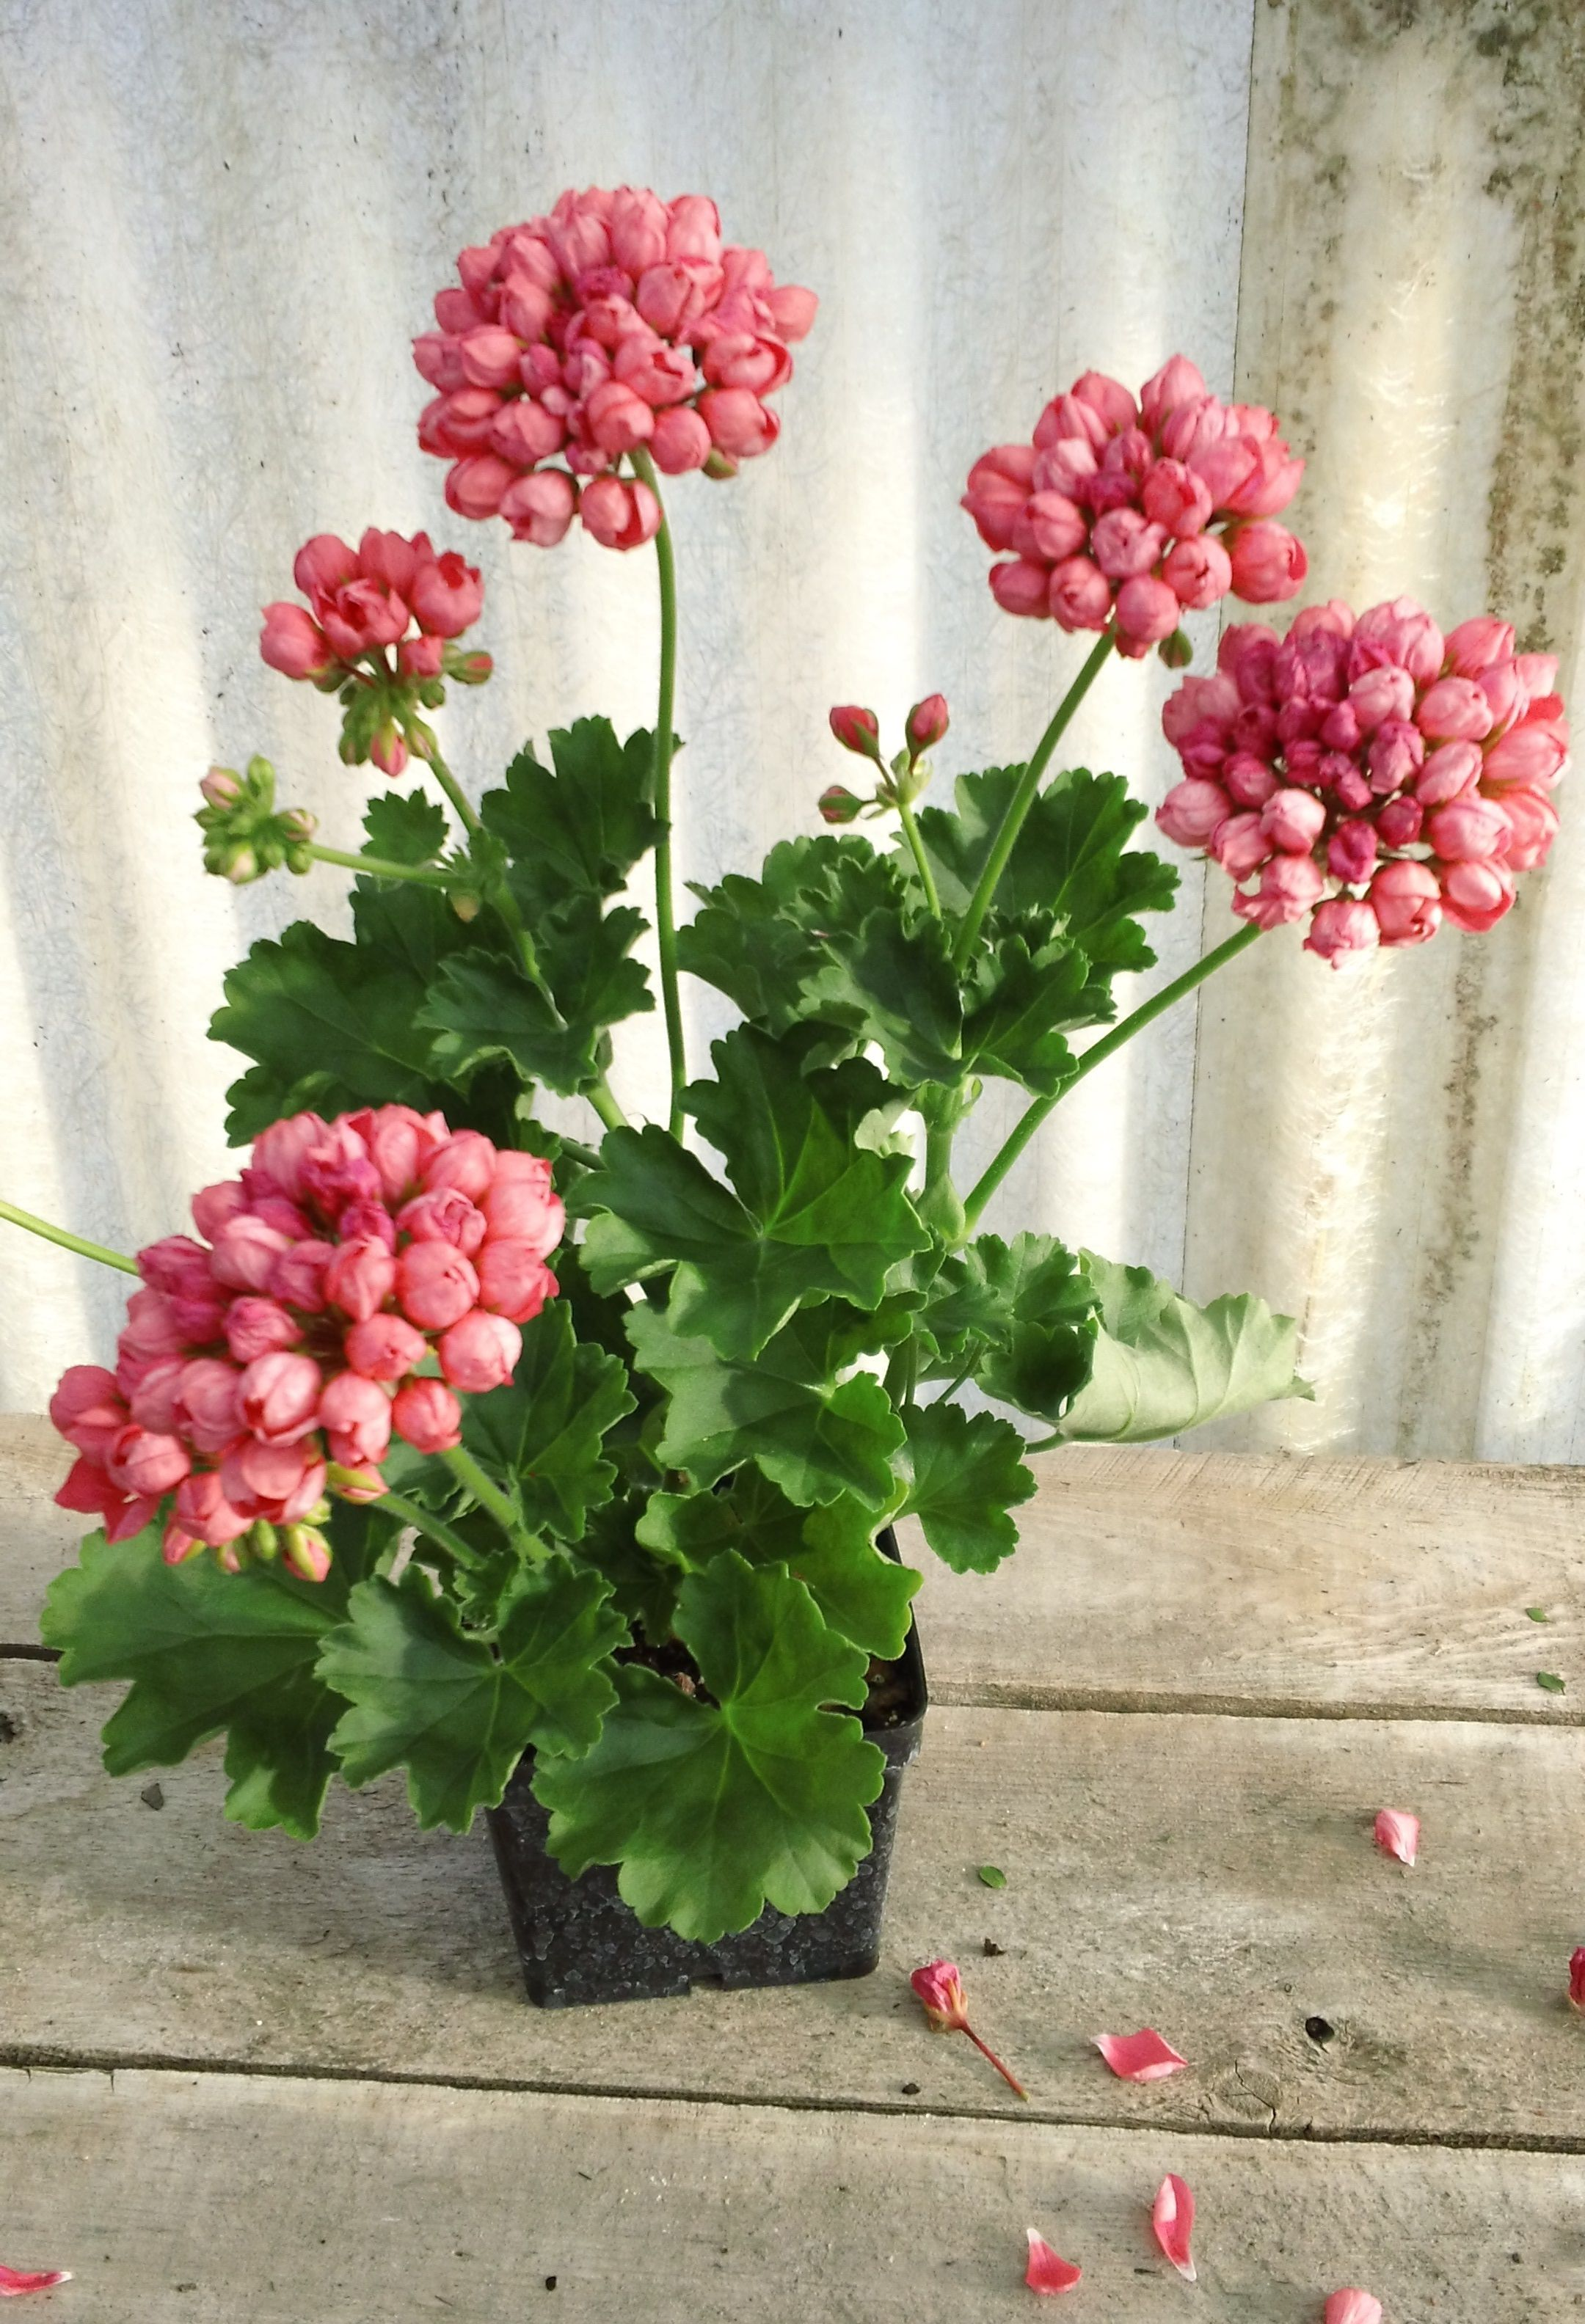 If you love geraniums you need this one it's called Amy. You'll find it only at Reynebeau floral or Riverside Florist